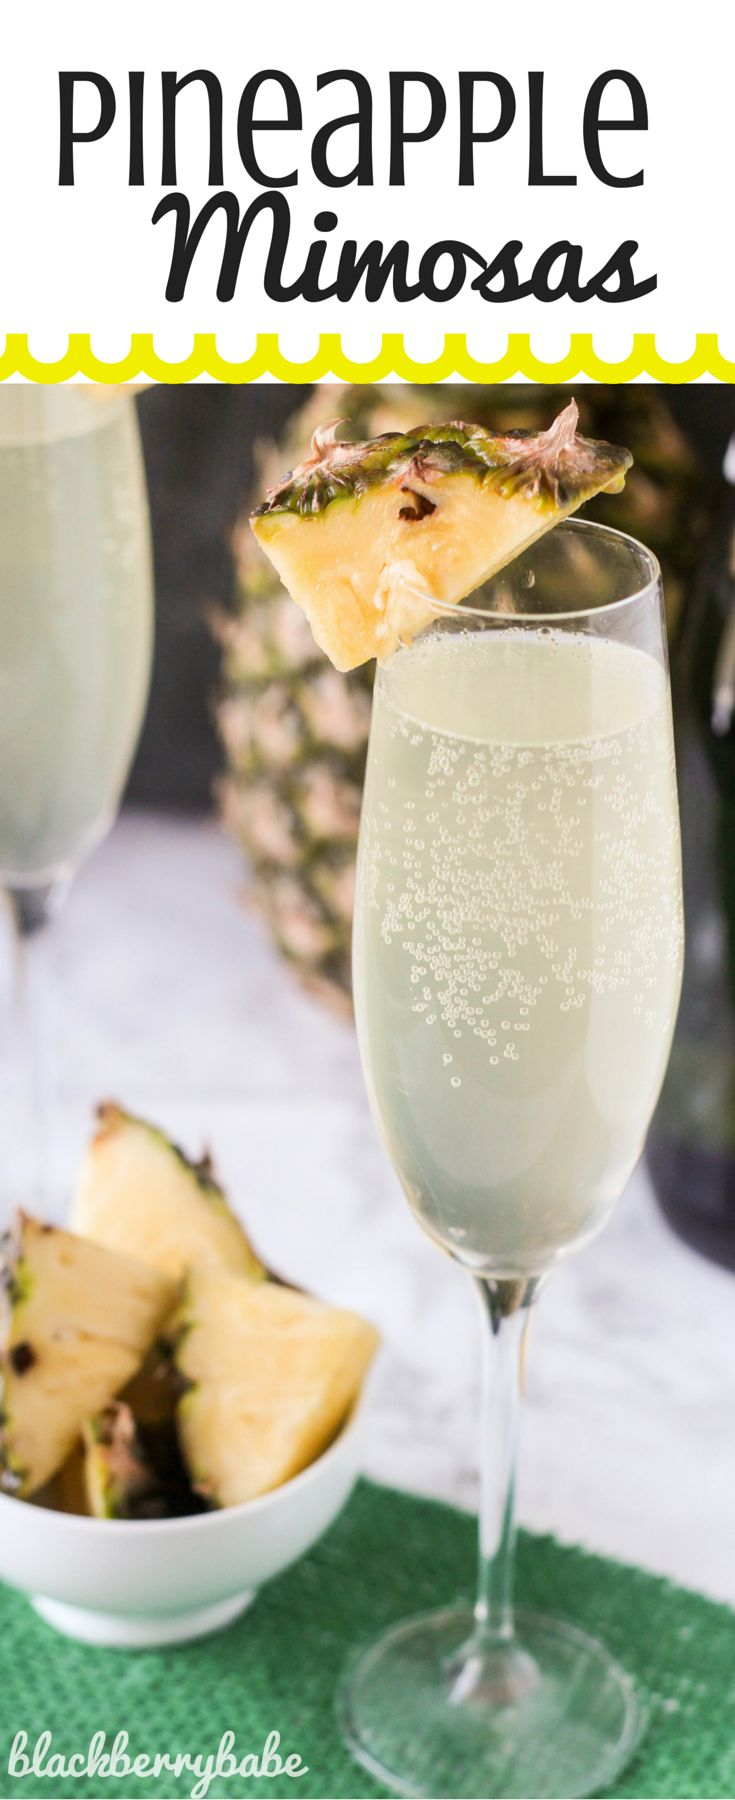 Pineapple Mimosas | It is a fruity, tropical twist on traditional mimosas! So easy, with just three common ingredients. @michelle_goth